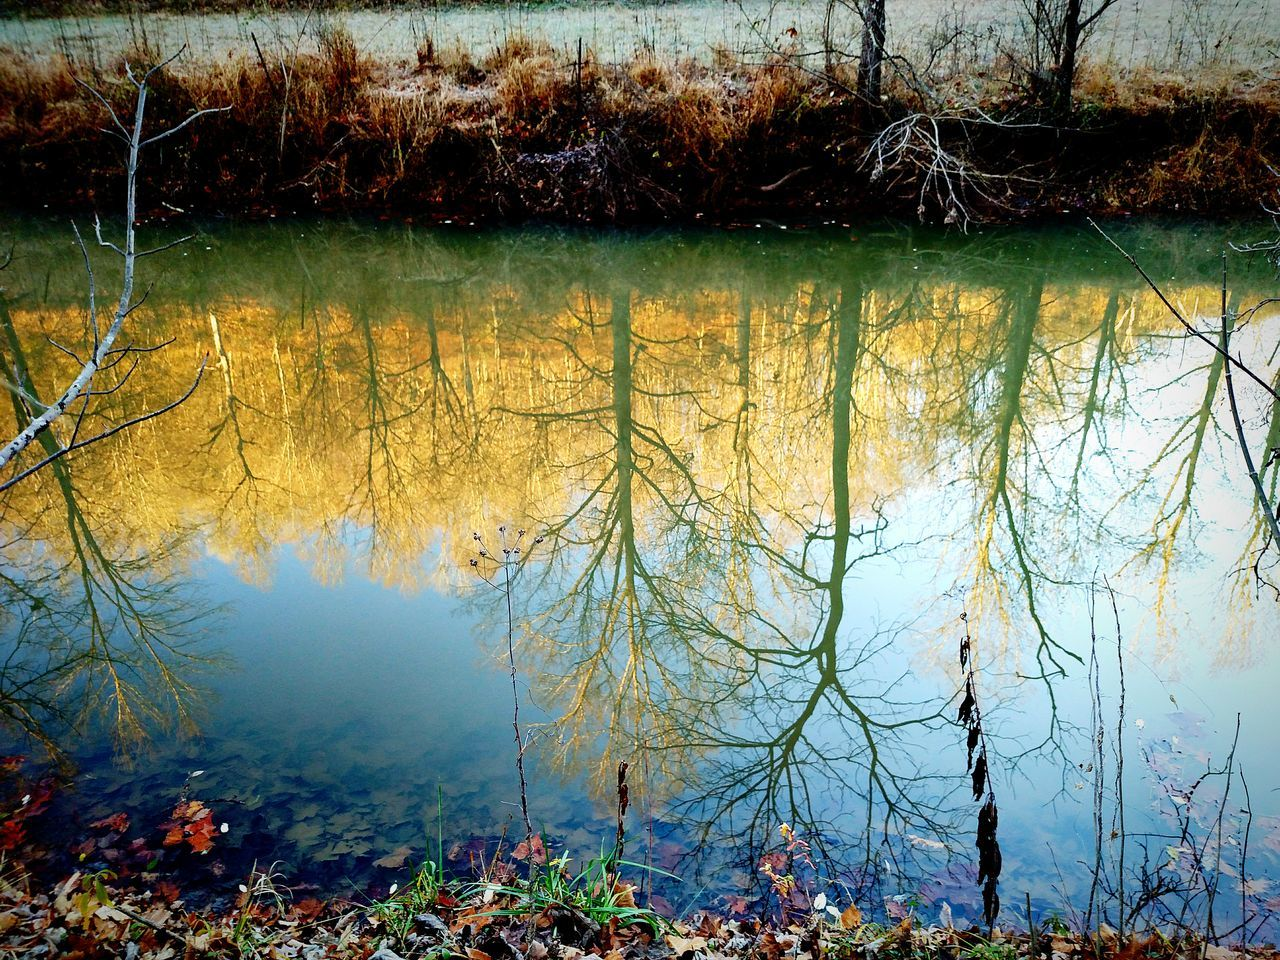 Morning Light Trees Treeline Water Reflection Water Frosty Mornings Beautiful Nature Nature EyeEm Nature Lover Colors Beautiful Colors Check This Out Taking Photos Sky And Trees Interesting Creek Streams Sunlight And Shadow EyeEm Best Shots Beautiful Sky Mobilephotography West Virginia Exploringpaidoff